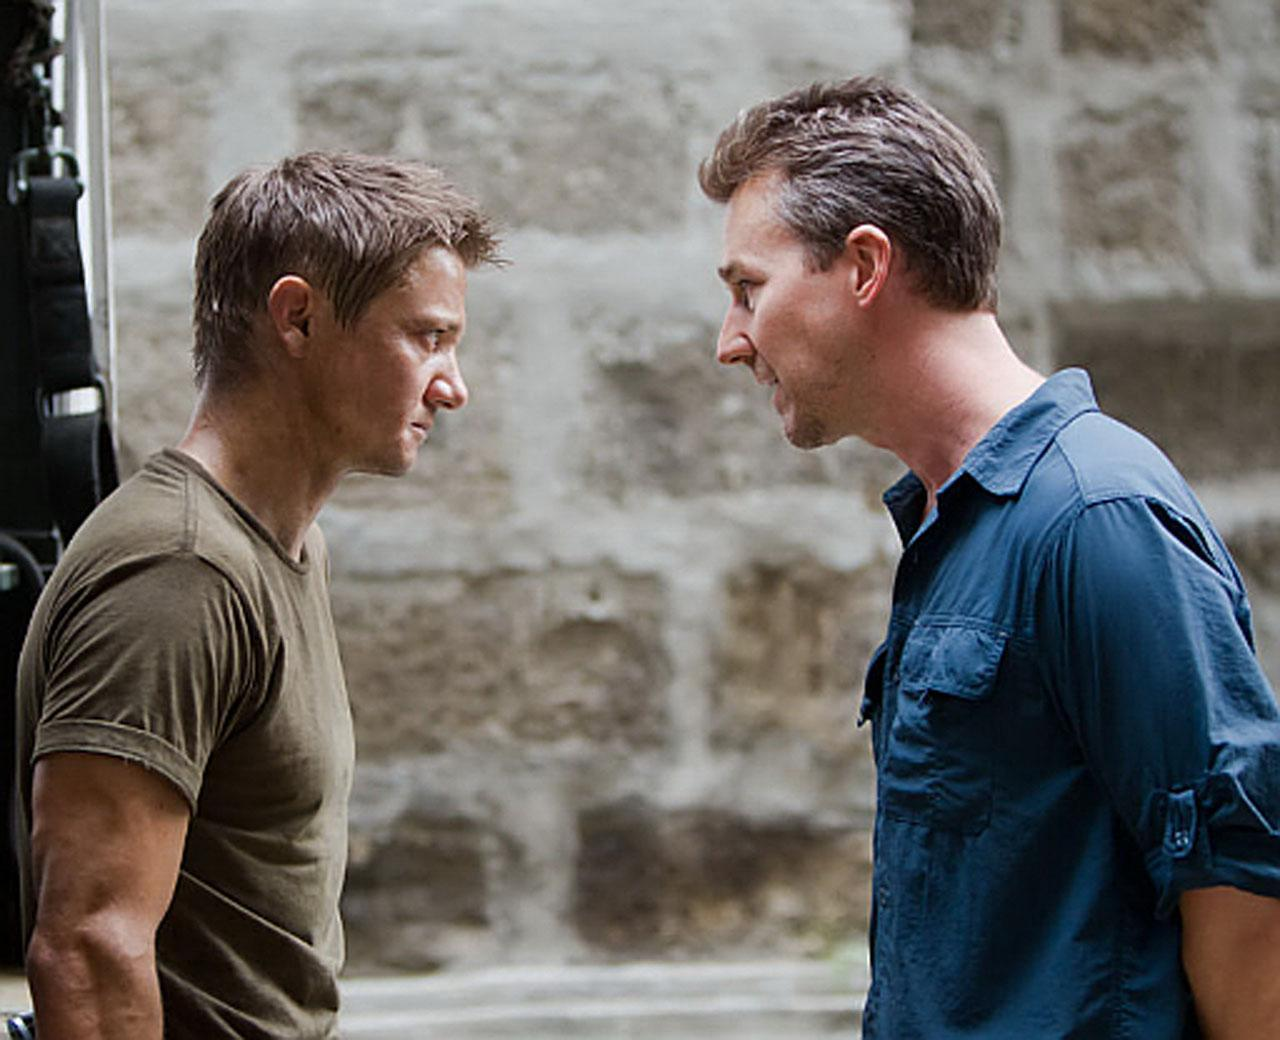 Agent Aaron Cross (Jeremy Renner) and CIA bad guy Eric Byer (Edward Norton) in The Bourne Legacy (2012)